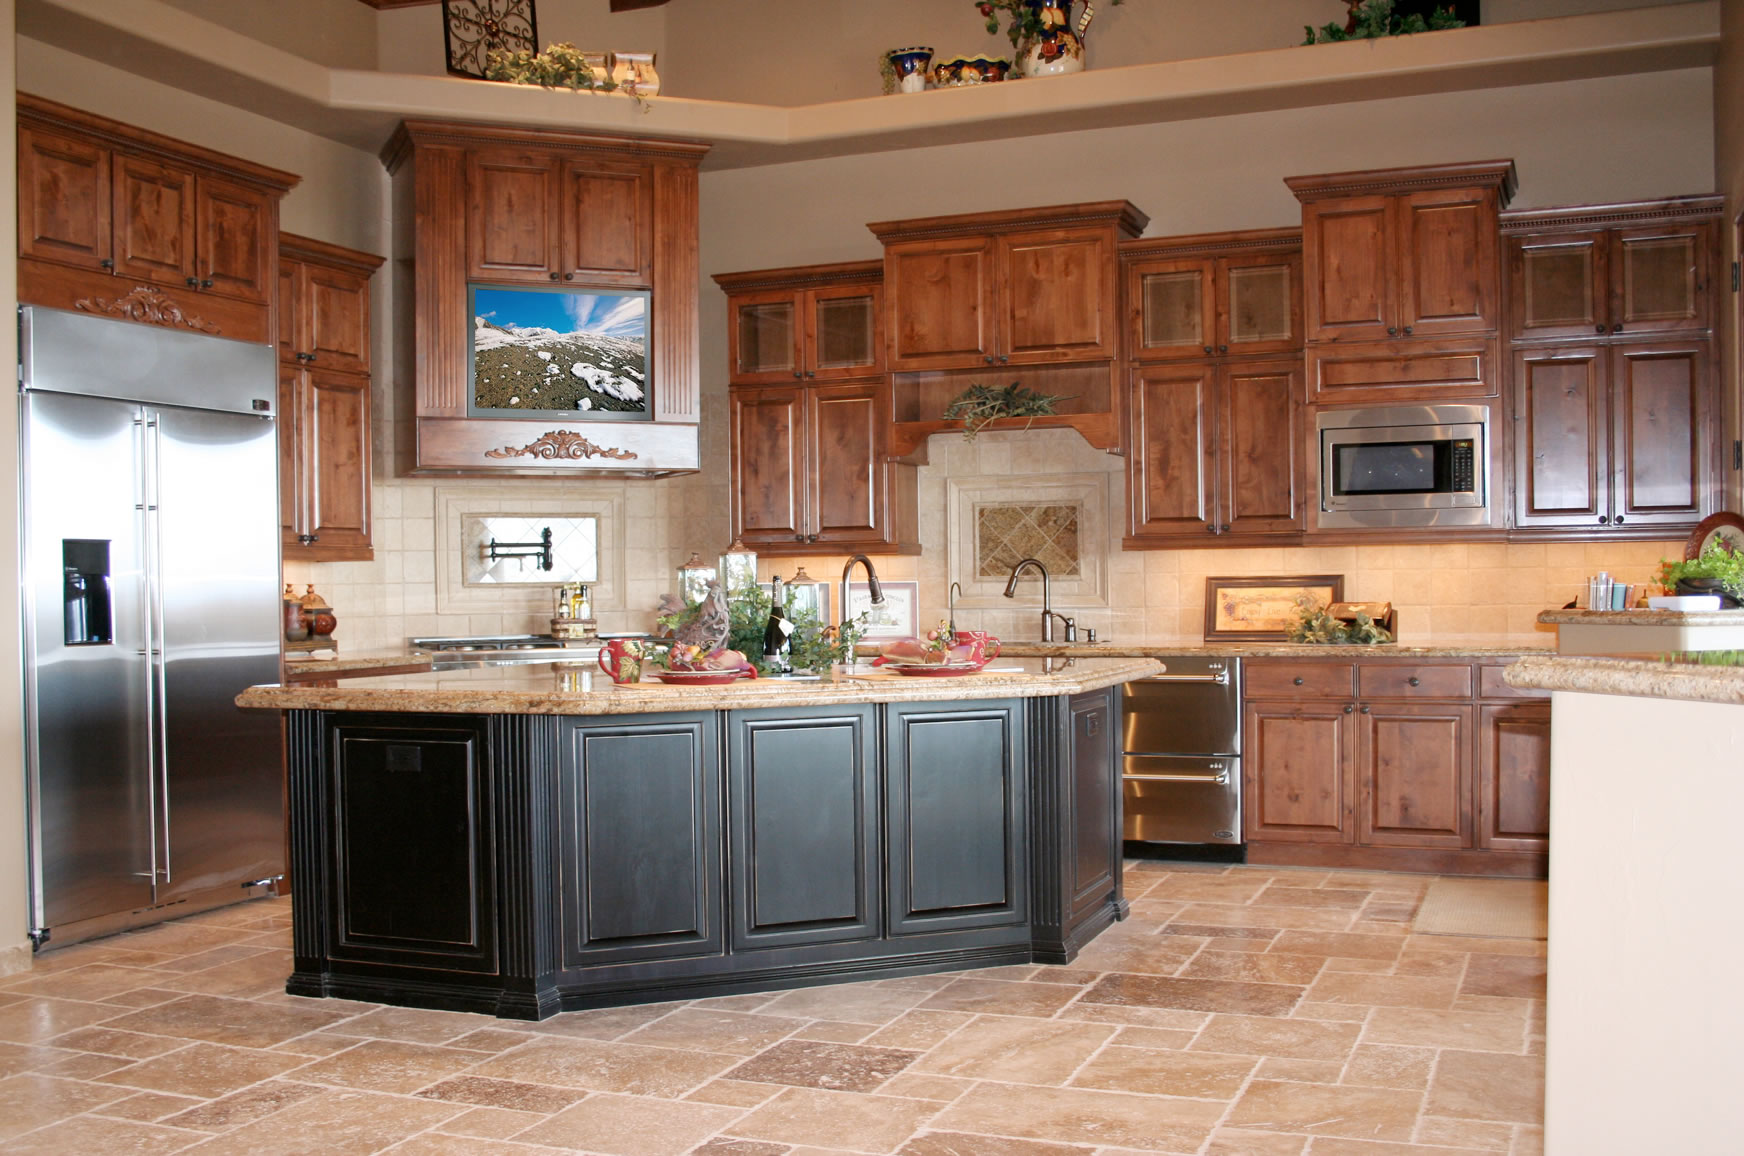 Kitchen image kitchen bathroom design center Kitchen furniture ideas